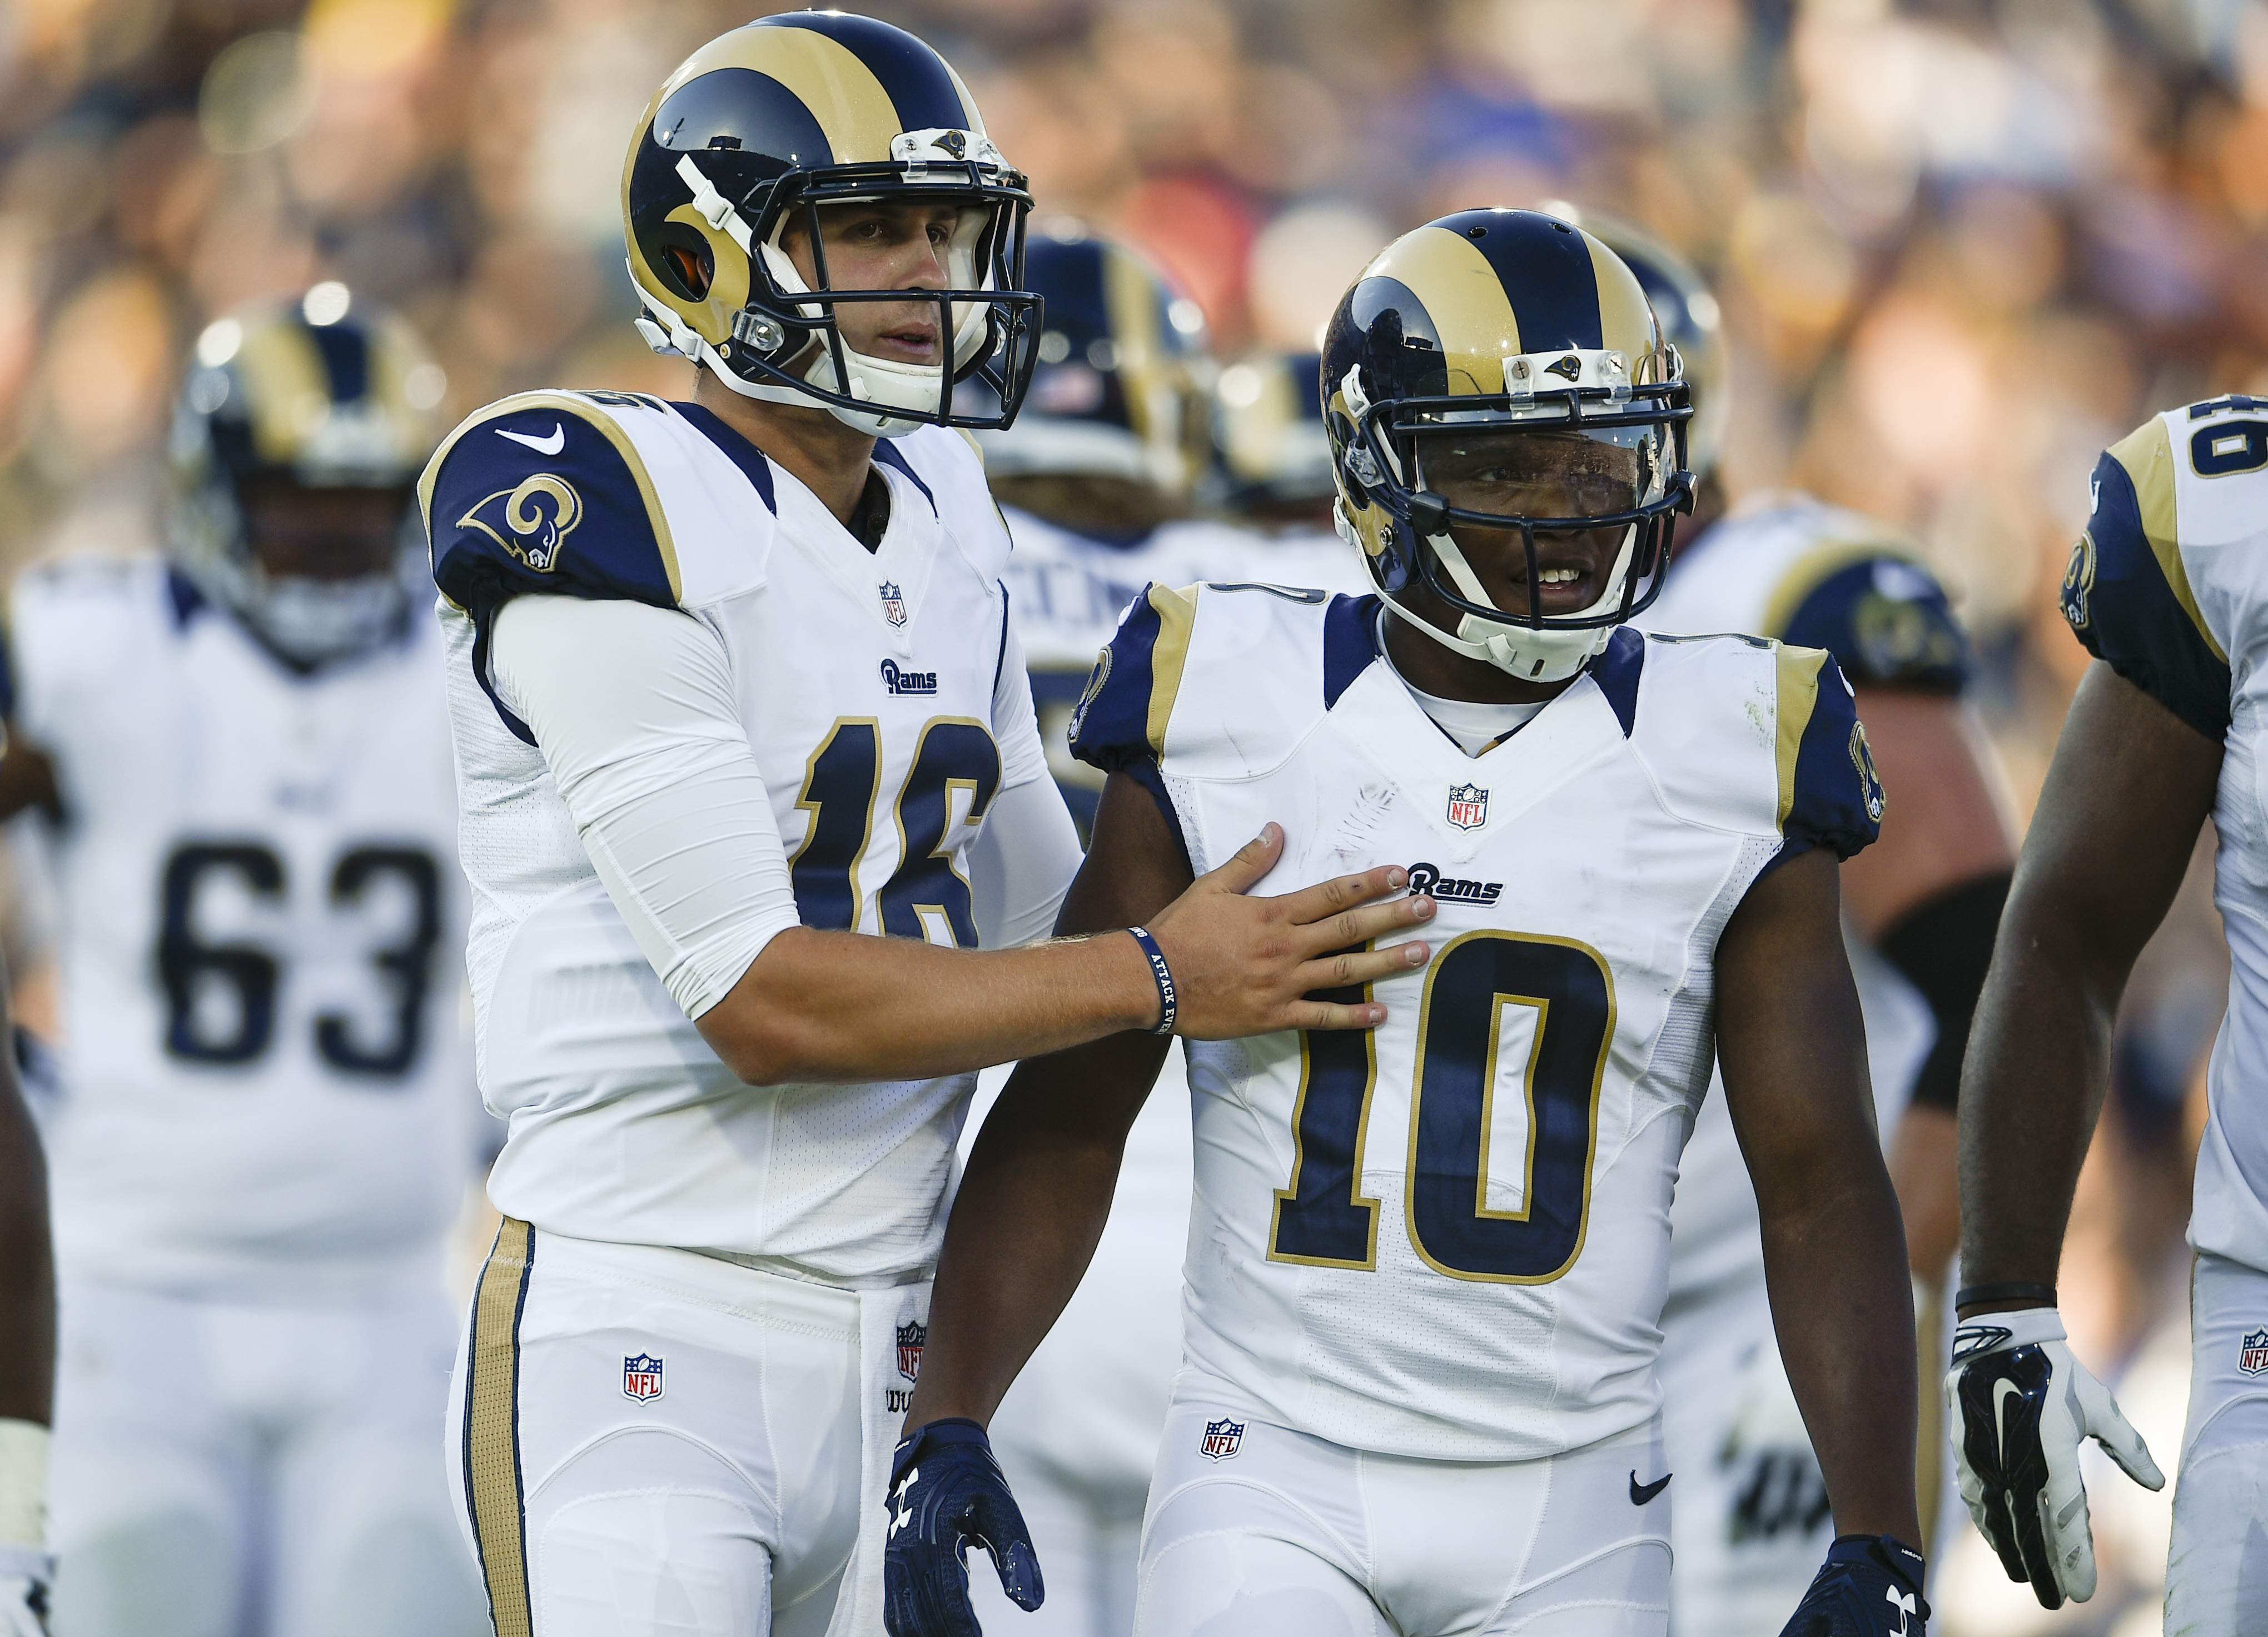 Los Angeles Rams QB Jared Goff and WR Pharoh Cooper